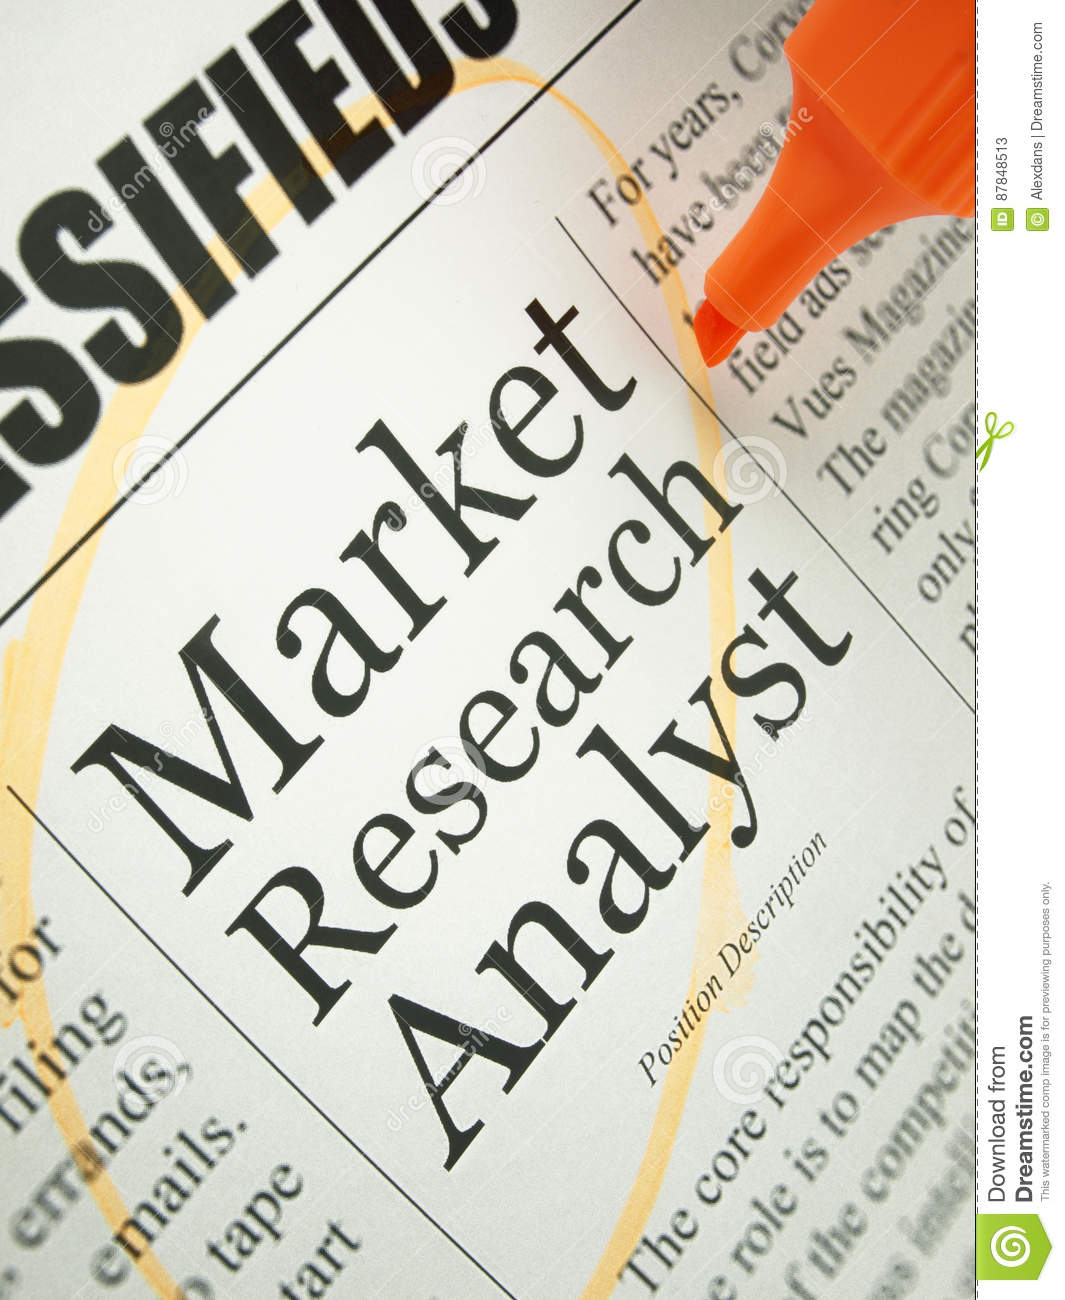 download market research analyst stock image image of newspaper 87848513